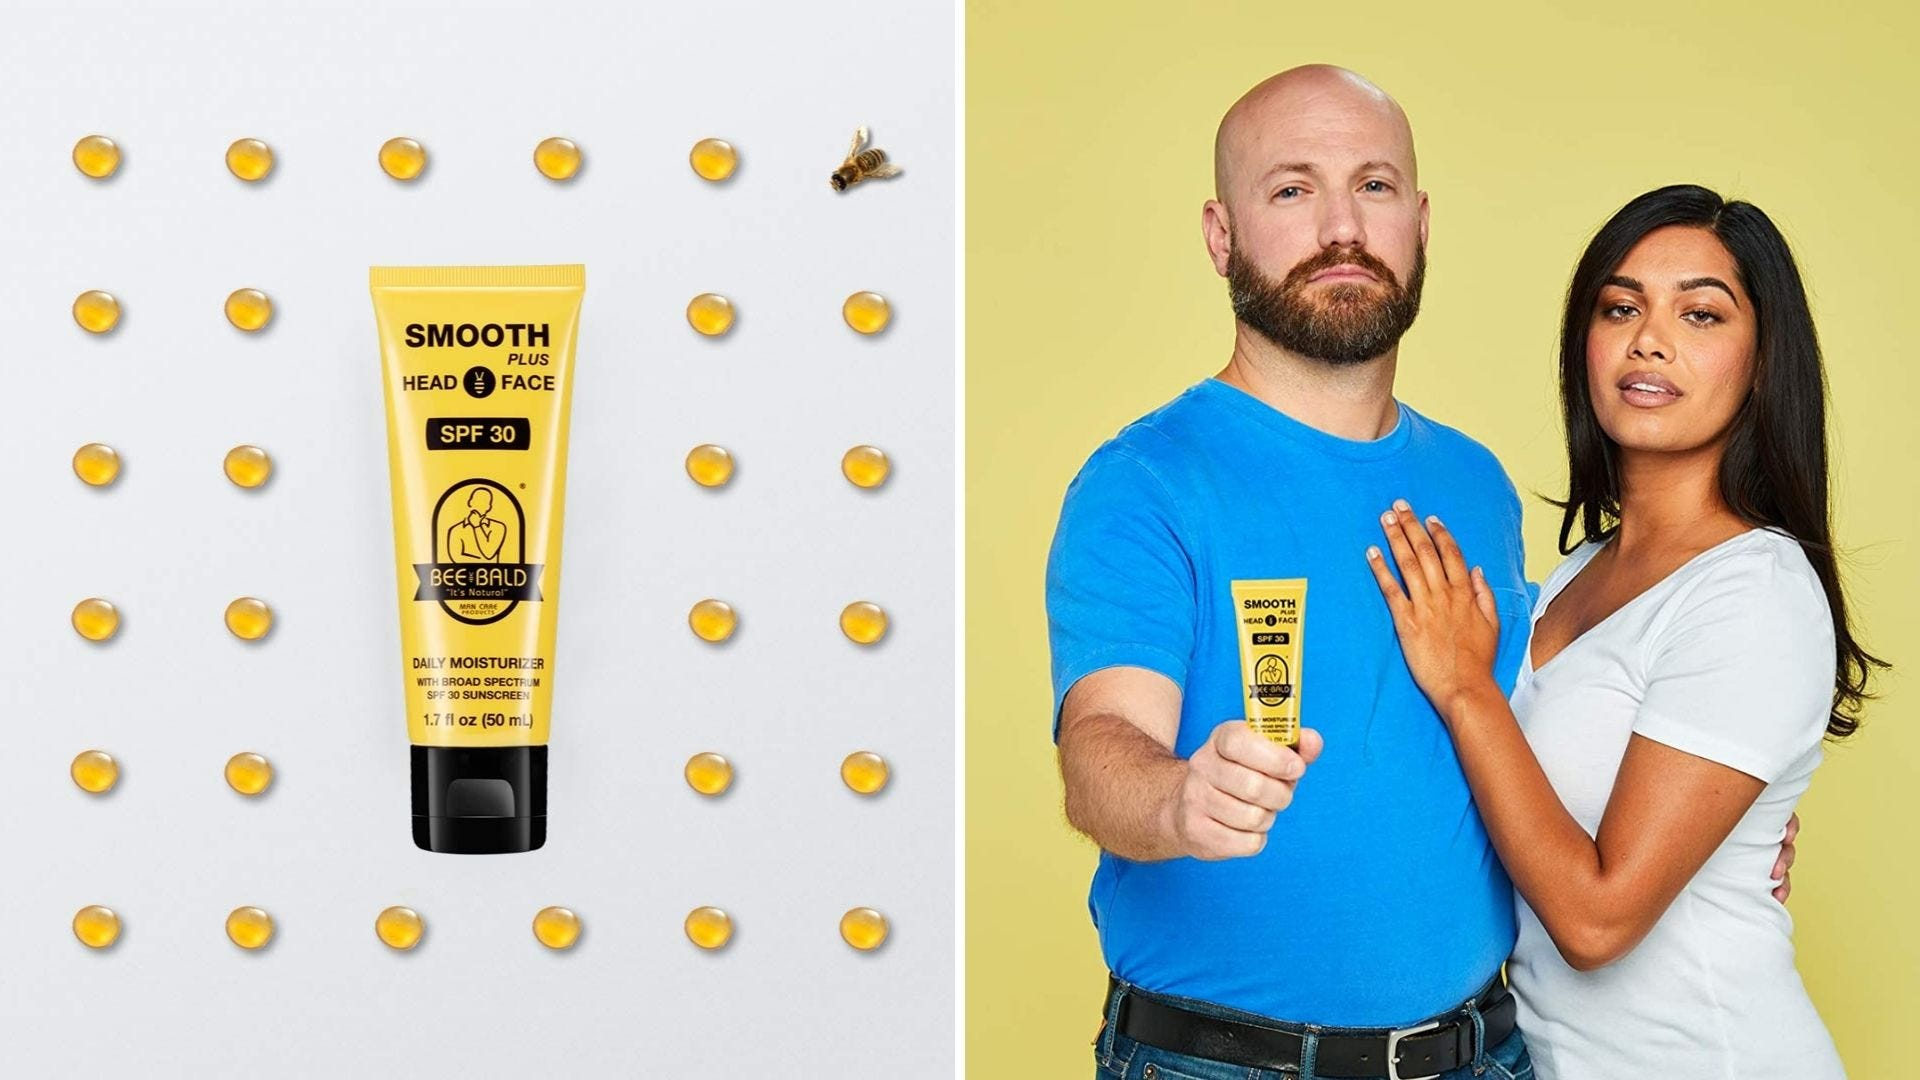 A yellow bottle of sunscreen. A man and woman hold the bottle of sunscreen.